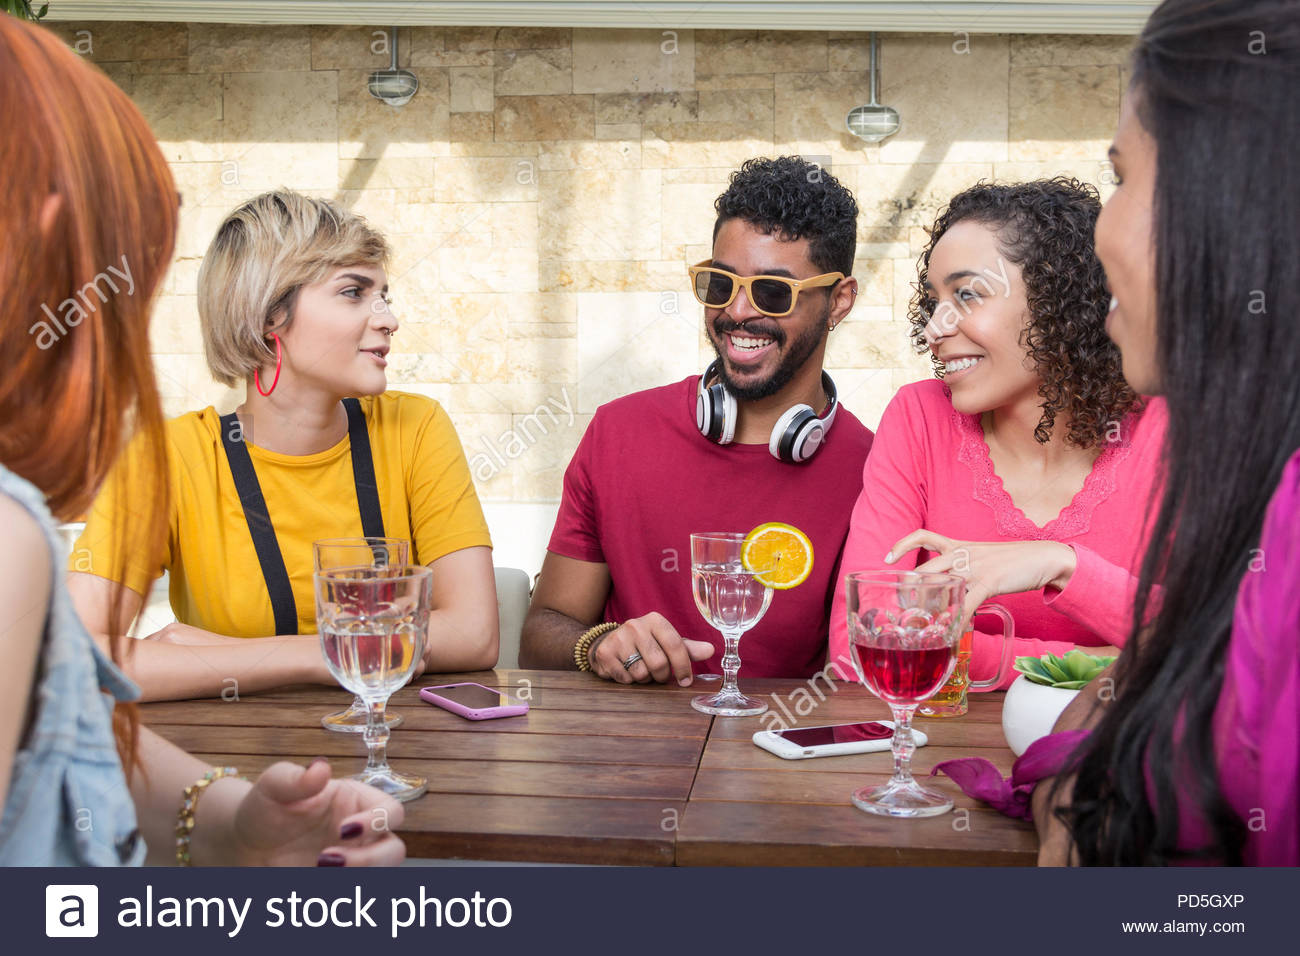 Group of young people hanging out, having fun at restaurant outside. College students partying together at cafe bar outdoor. Spring, warm, togethernes - Stock Image